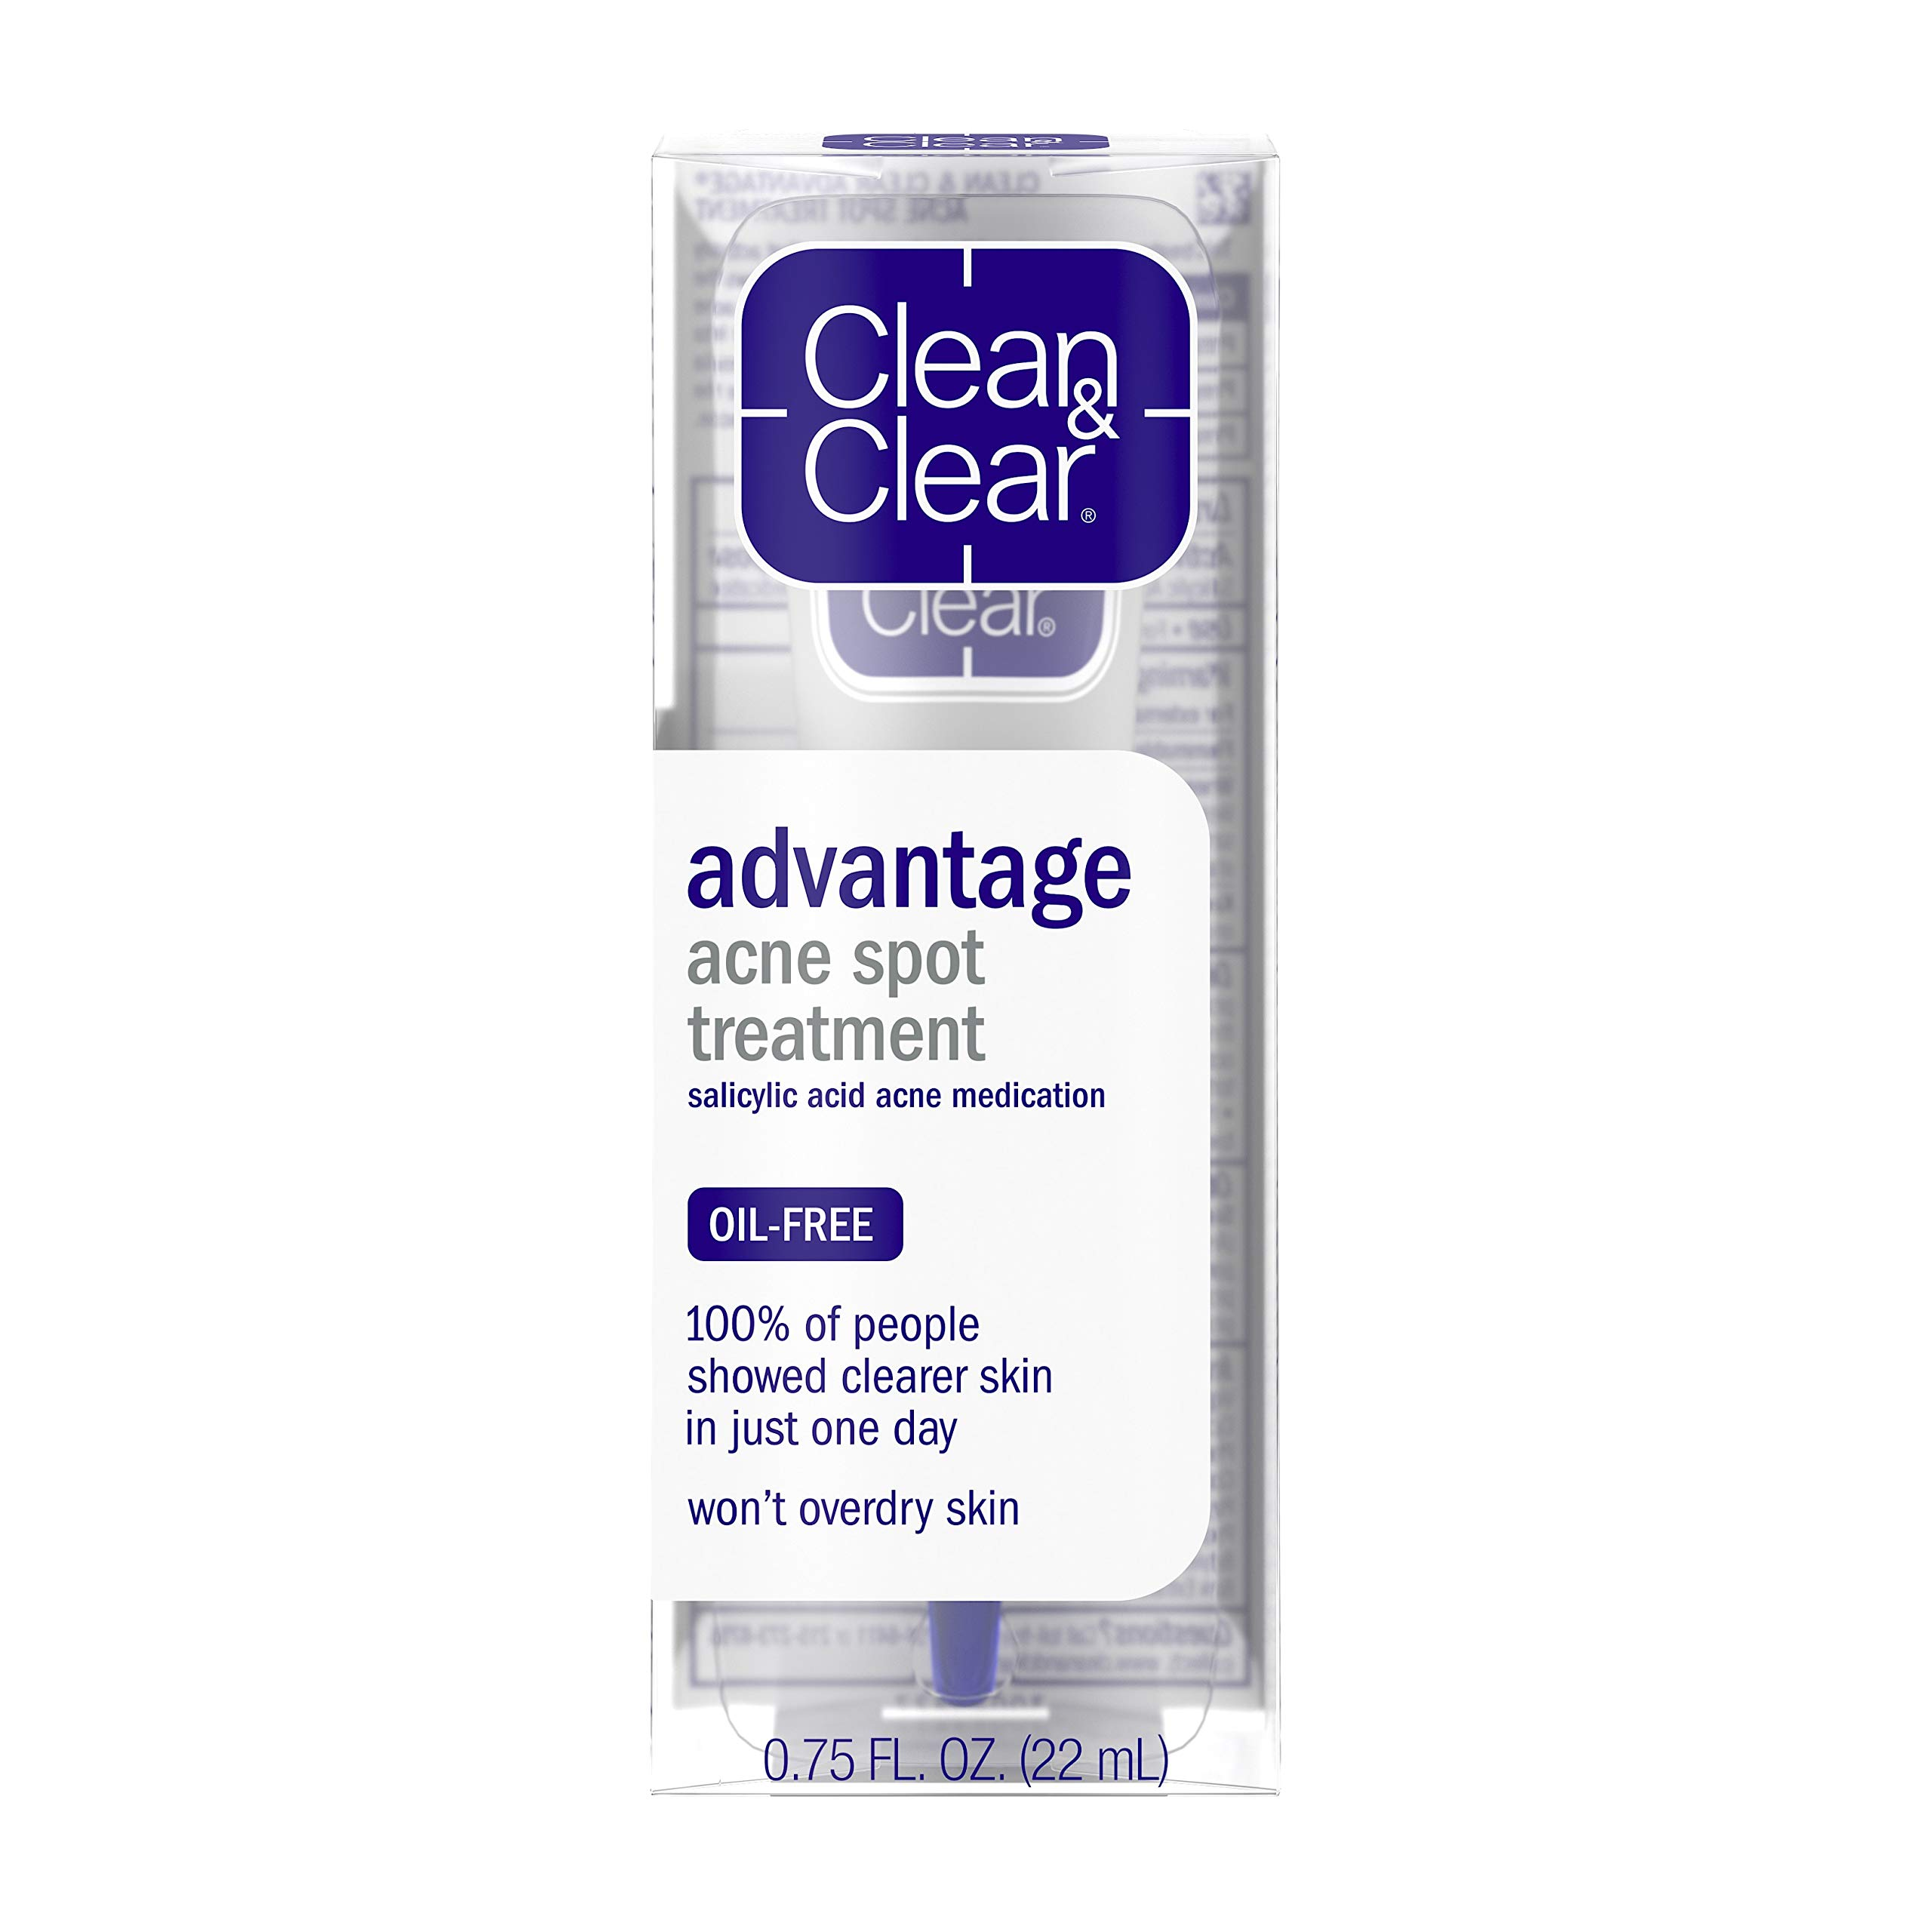 Clean & Clear Advantage Acne Spot Treatment, Oil Free Acne Treatment with Salicylic Acid, Gel Pimple Cream for Adults and Teens, Witch Hazel & Salicylic Acid Medication,.75 oz ( Pack of 4)